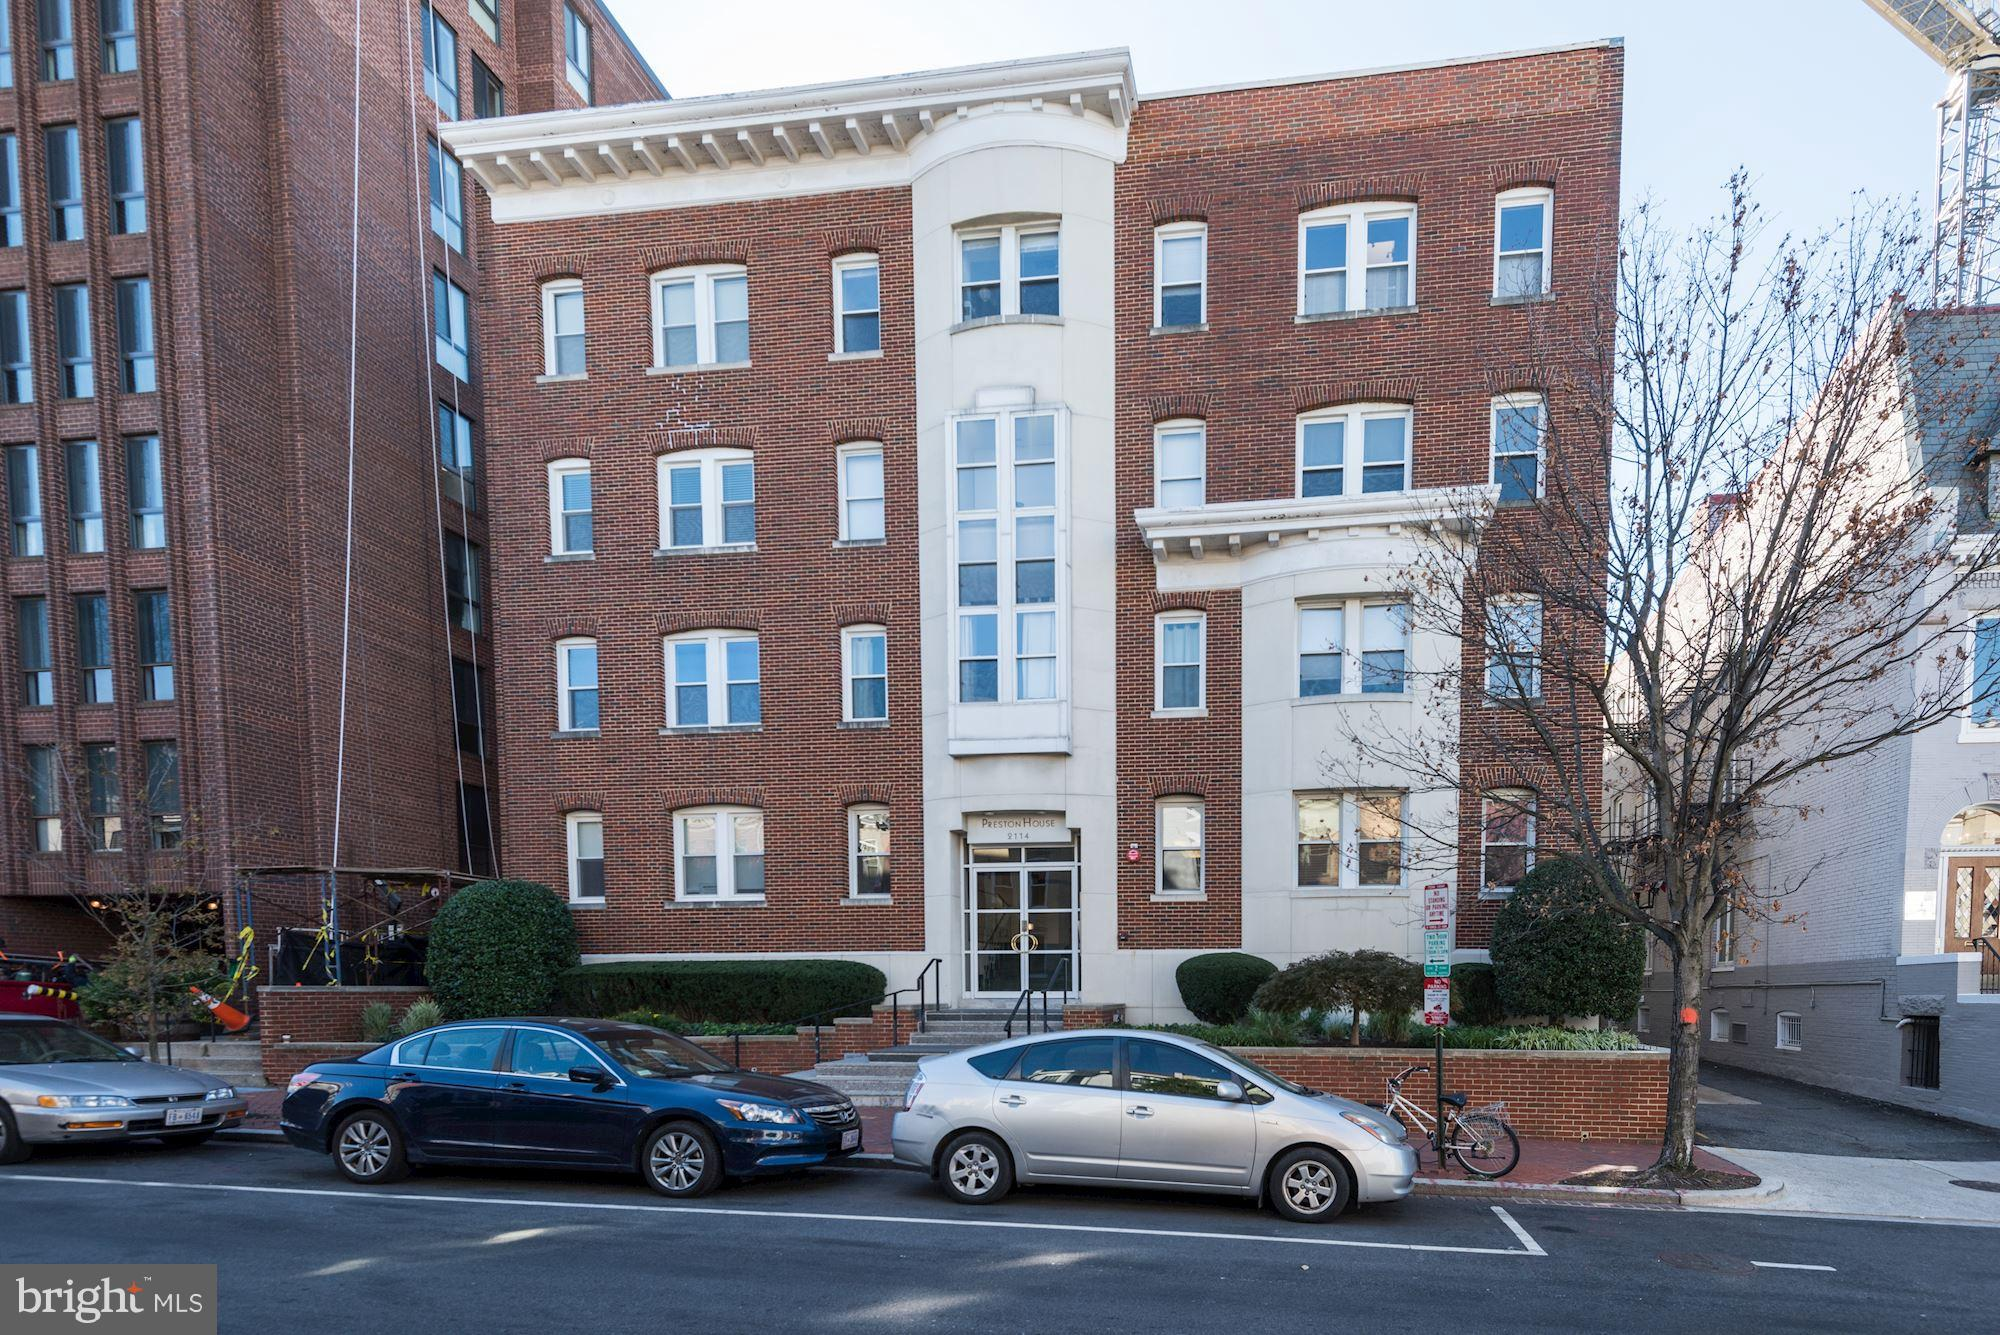 JUST LISTED & OPEN SUNDAY 11/11 1-3pm. Completely renovated bright 1 bedroom unit in the small, well